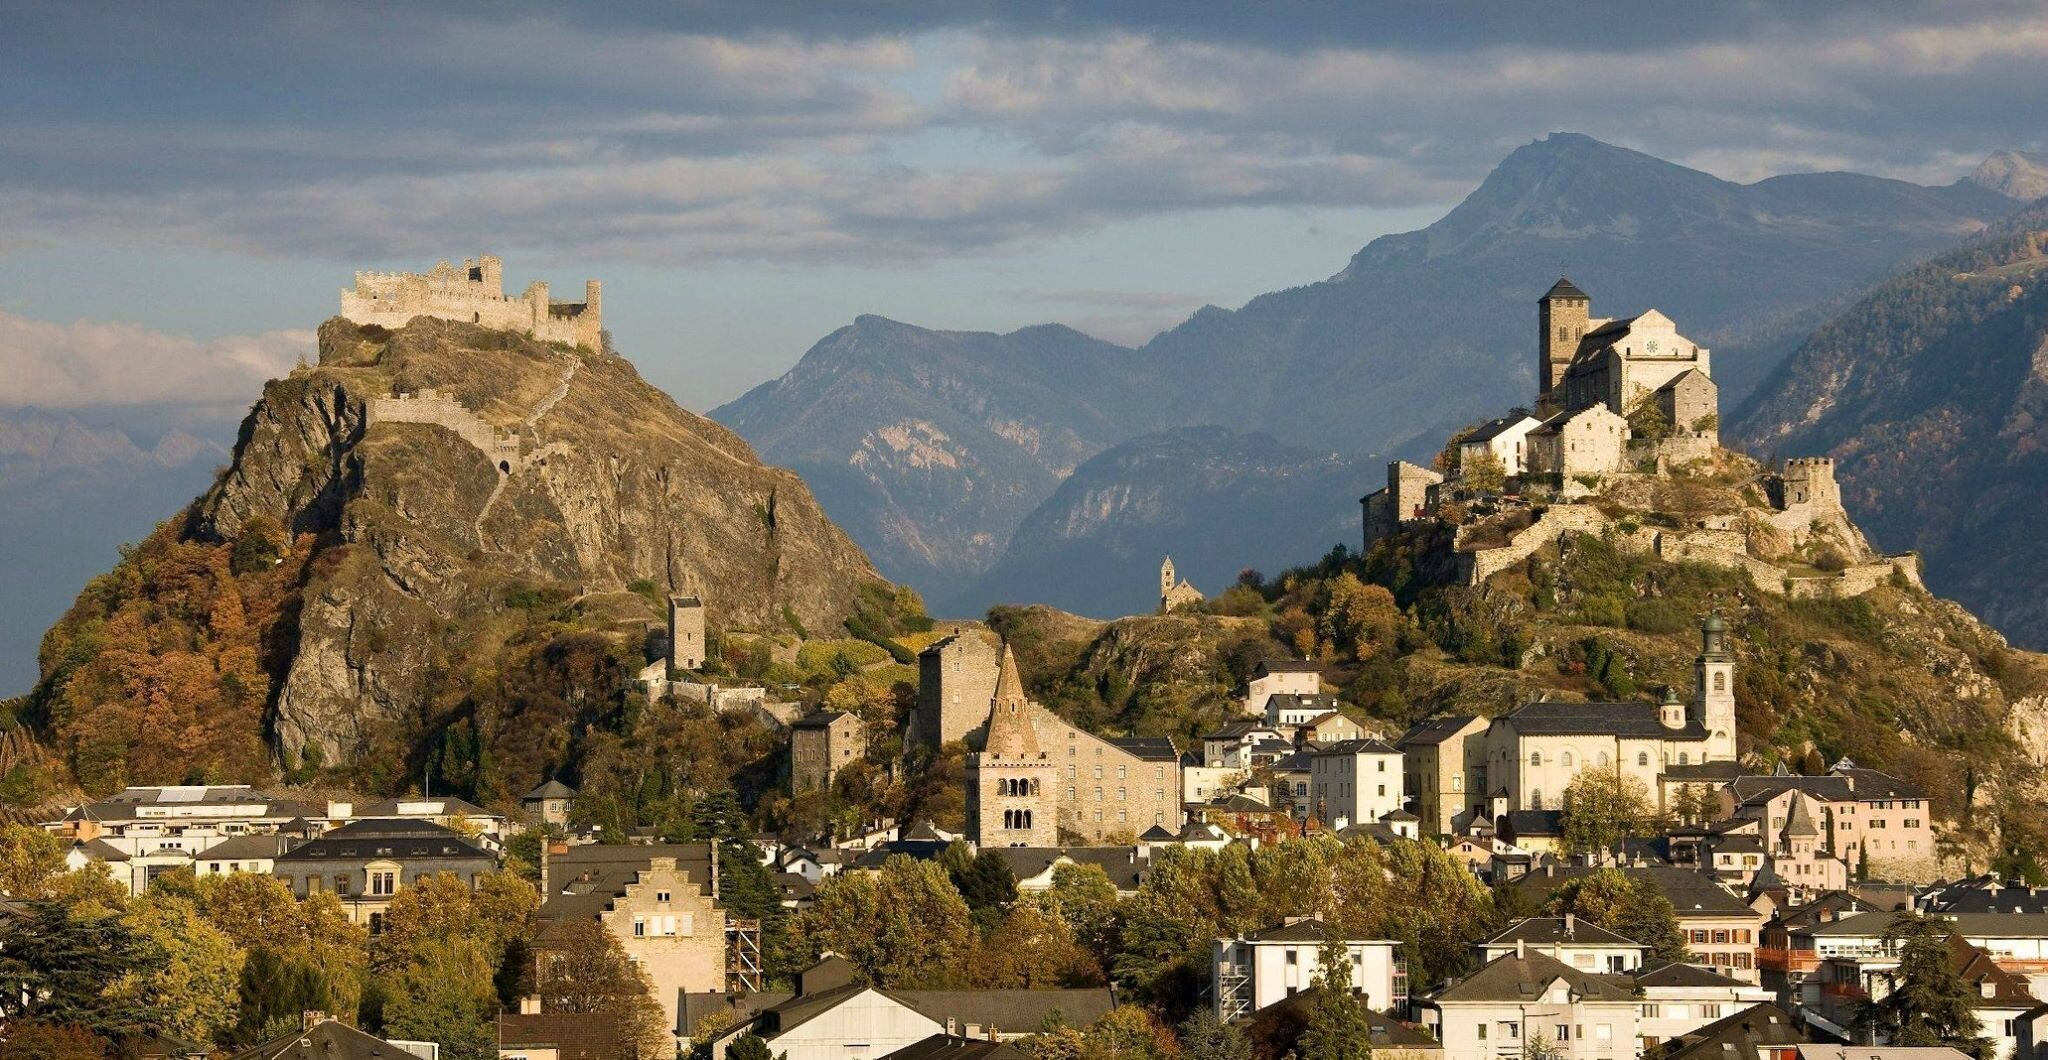 Sion Switzerland: Two Castles